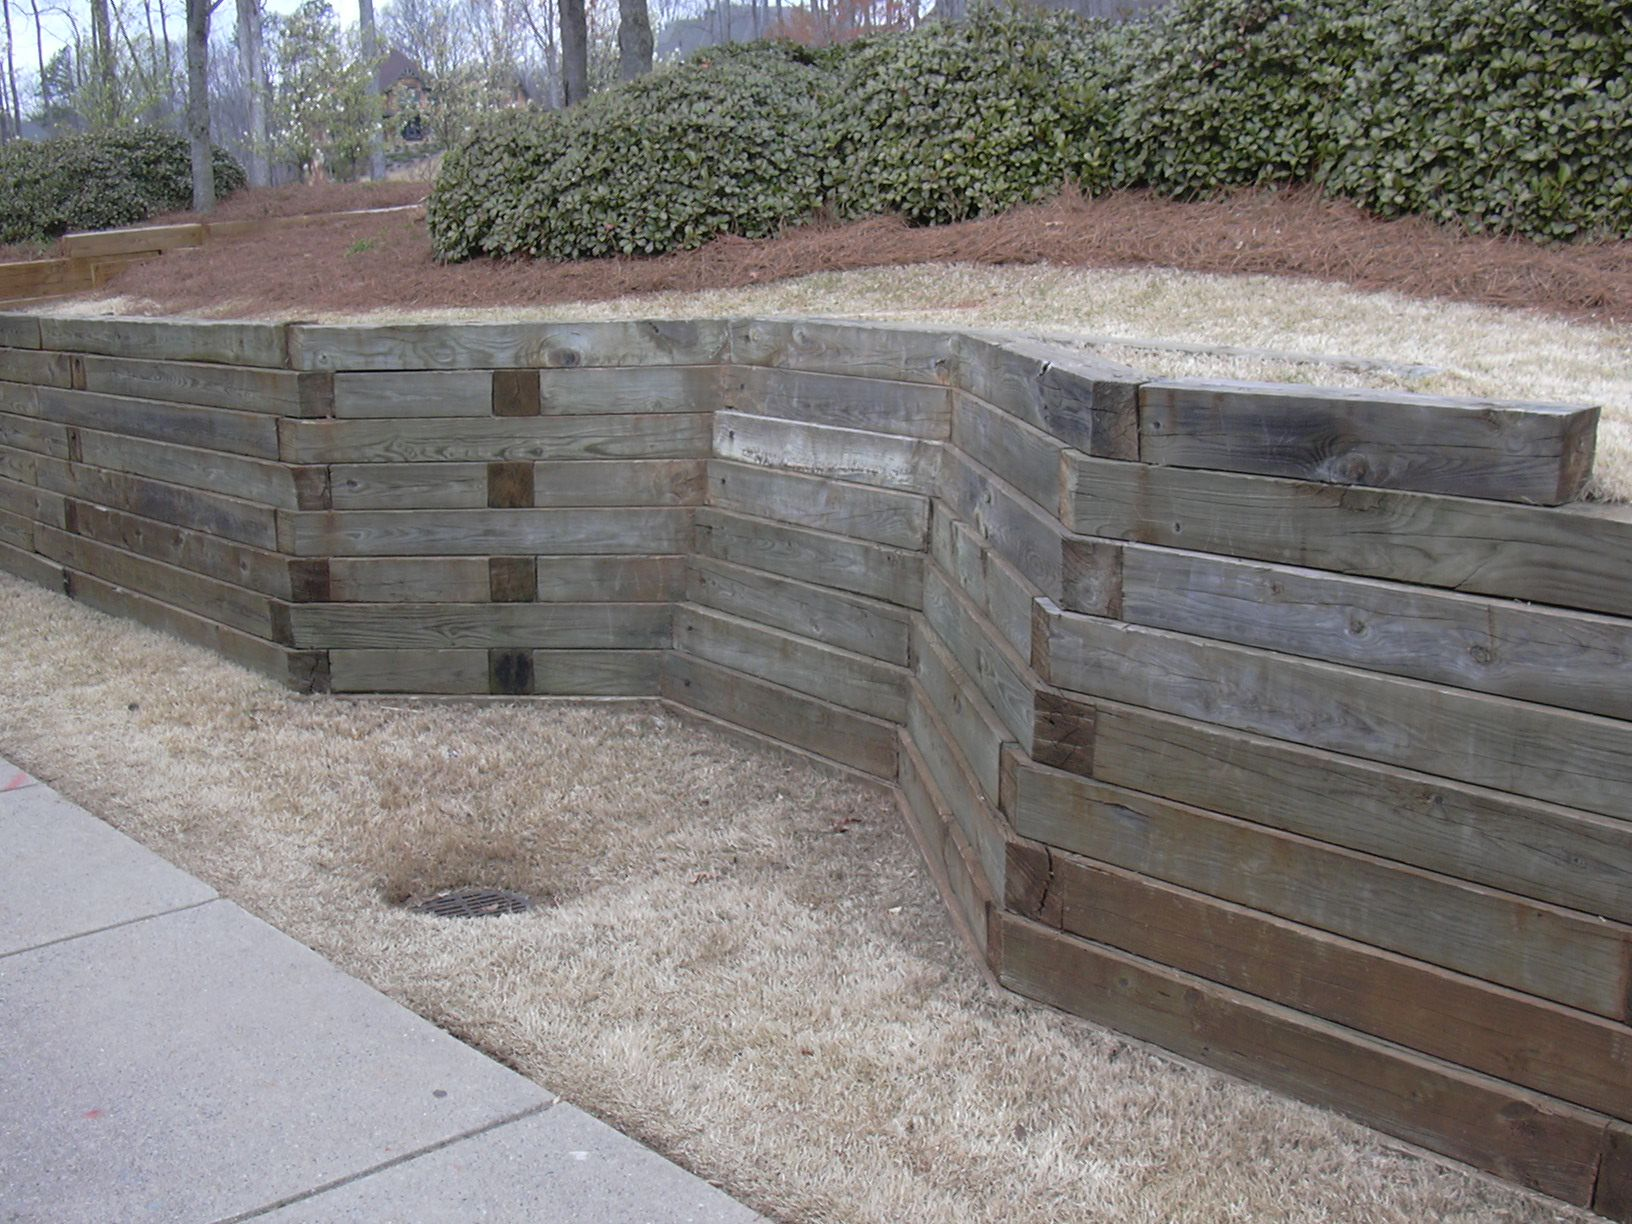 Timber Retaining Wall Image Landscaping Retaining Walls Retaining Wall Design Decorative Retaining Walls